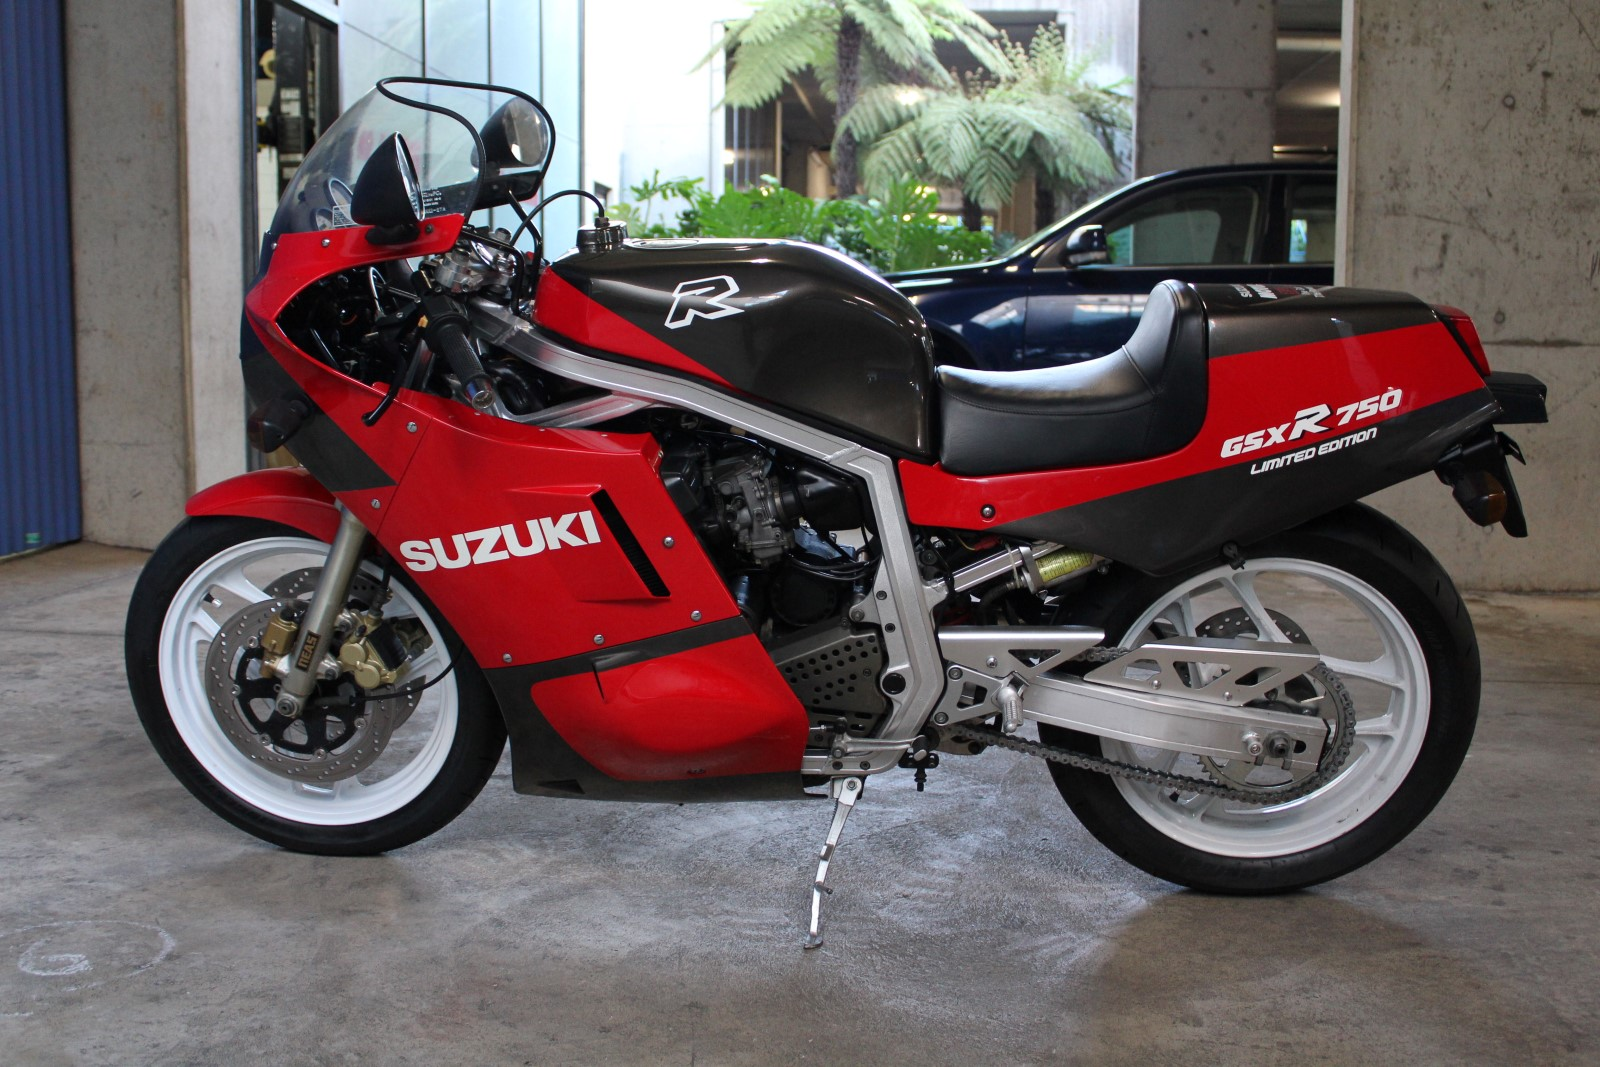 1986 Suzkuk GSX-R 750 Limited Edition